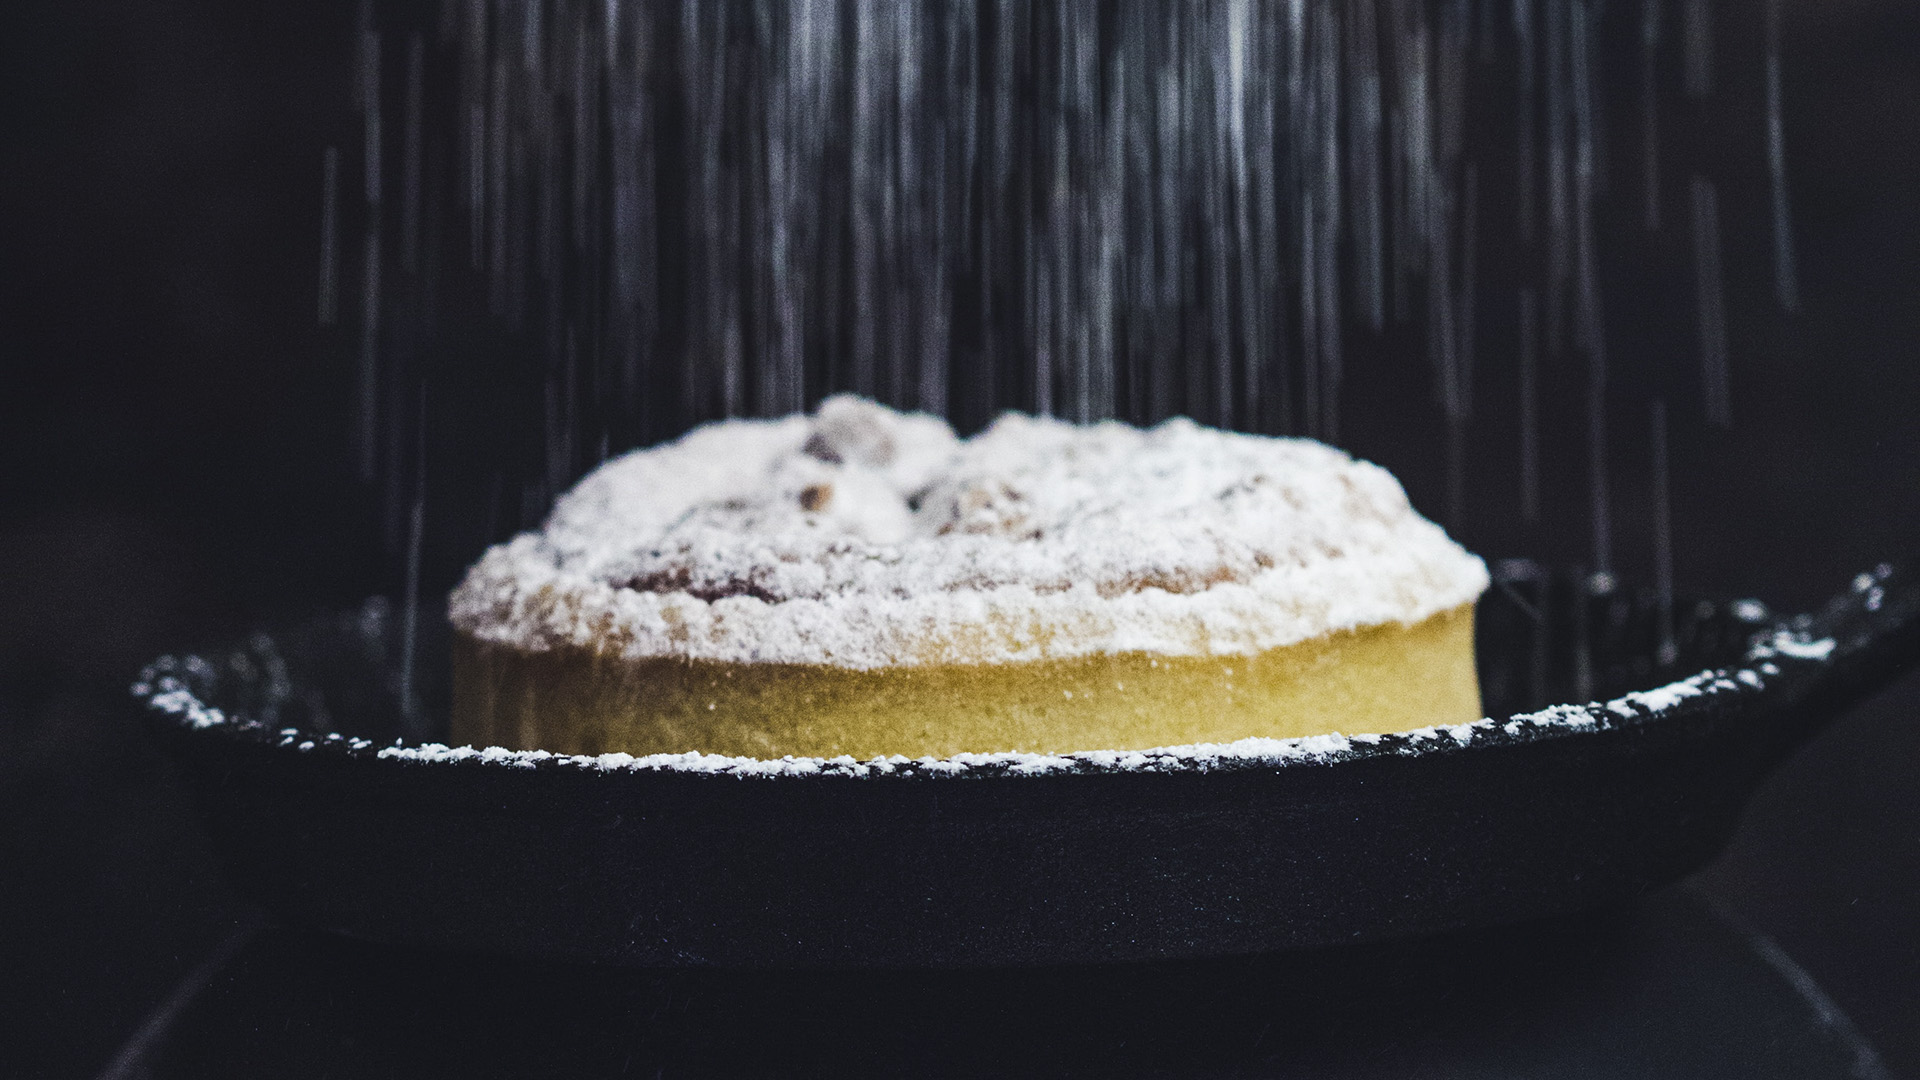 Study Suggests Ways To Reduce Salt In Baked Goods